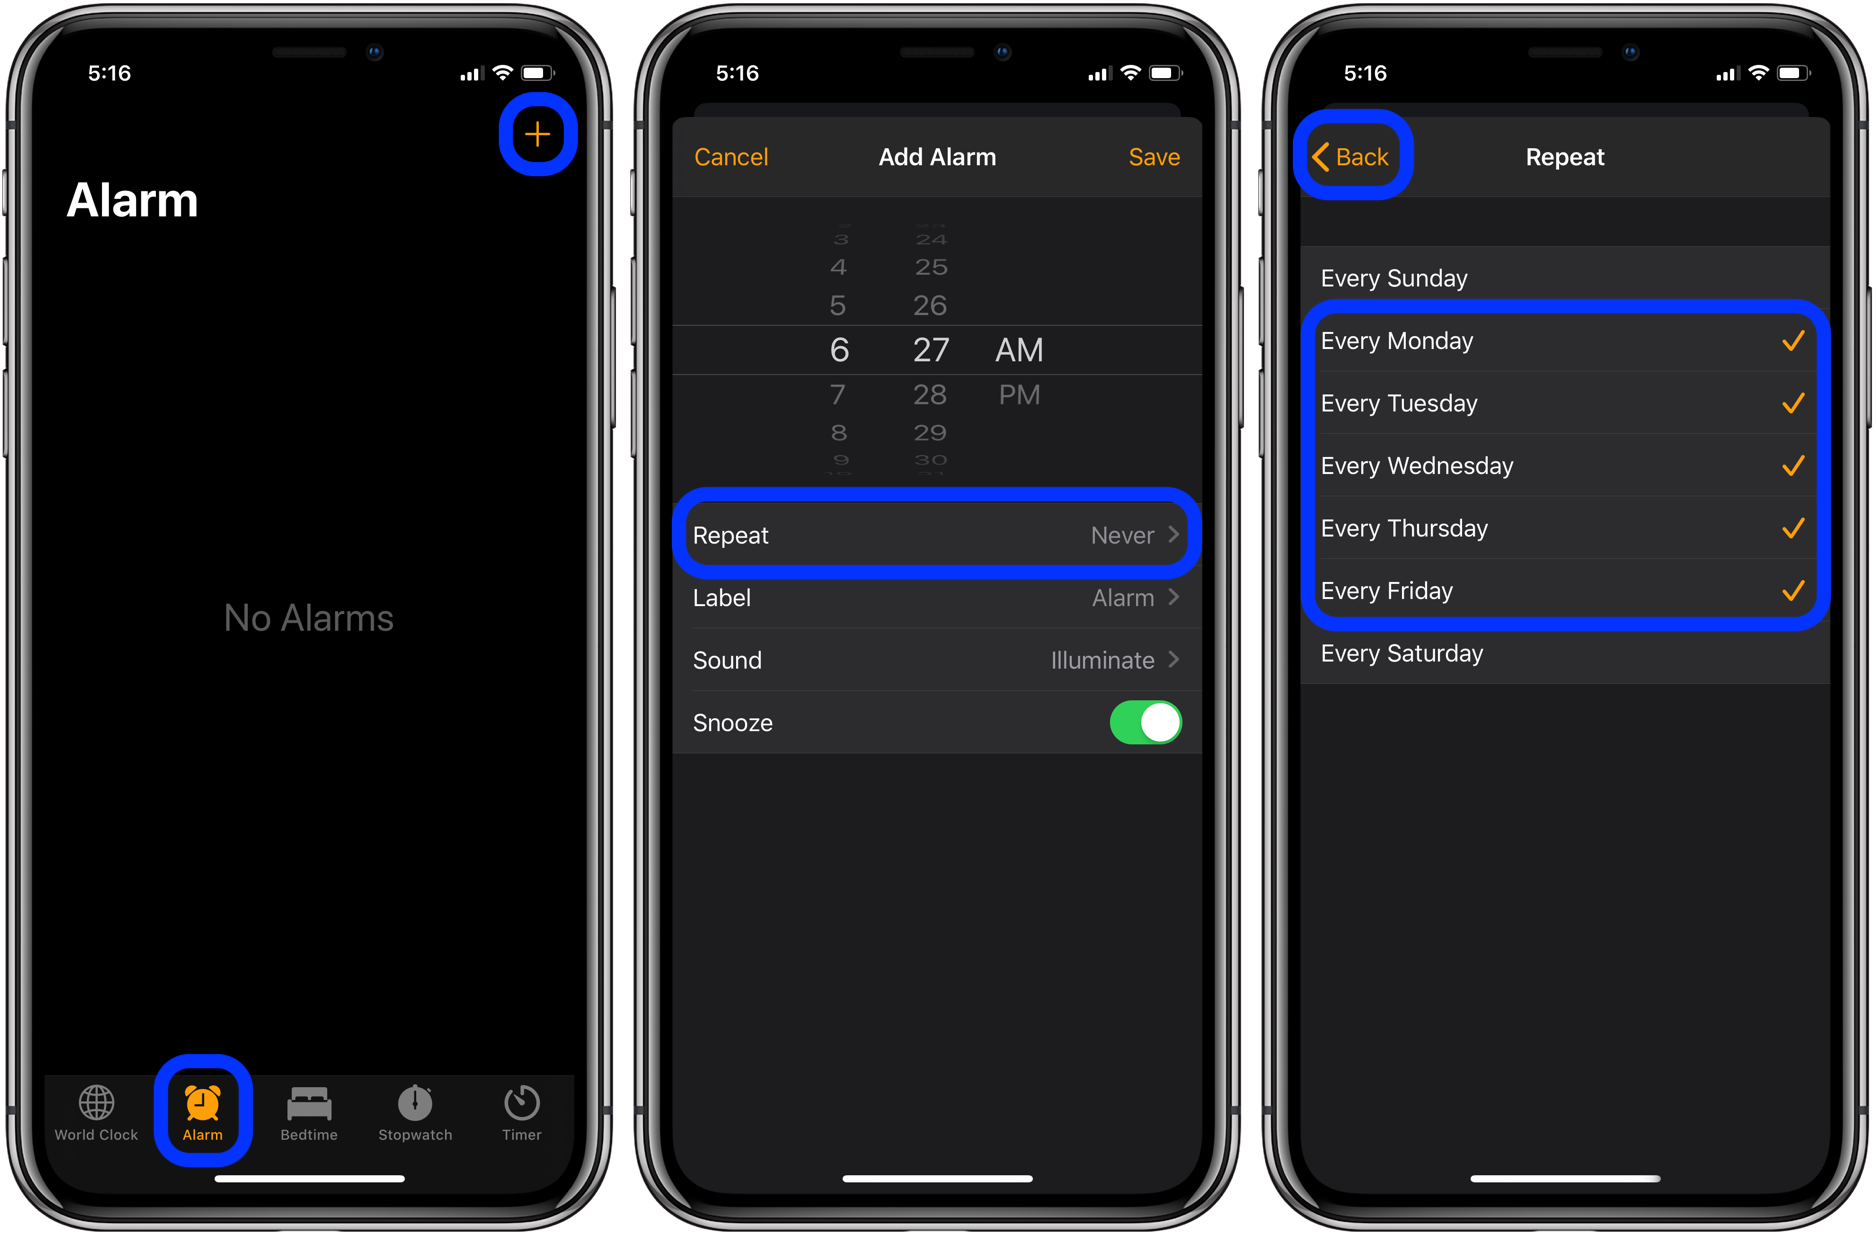 Repeating Scheduled Alarms On Iphone